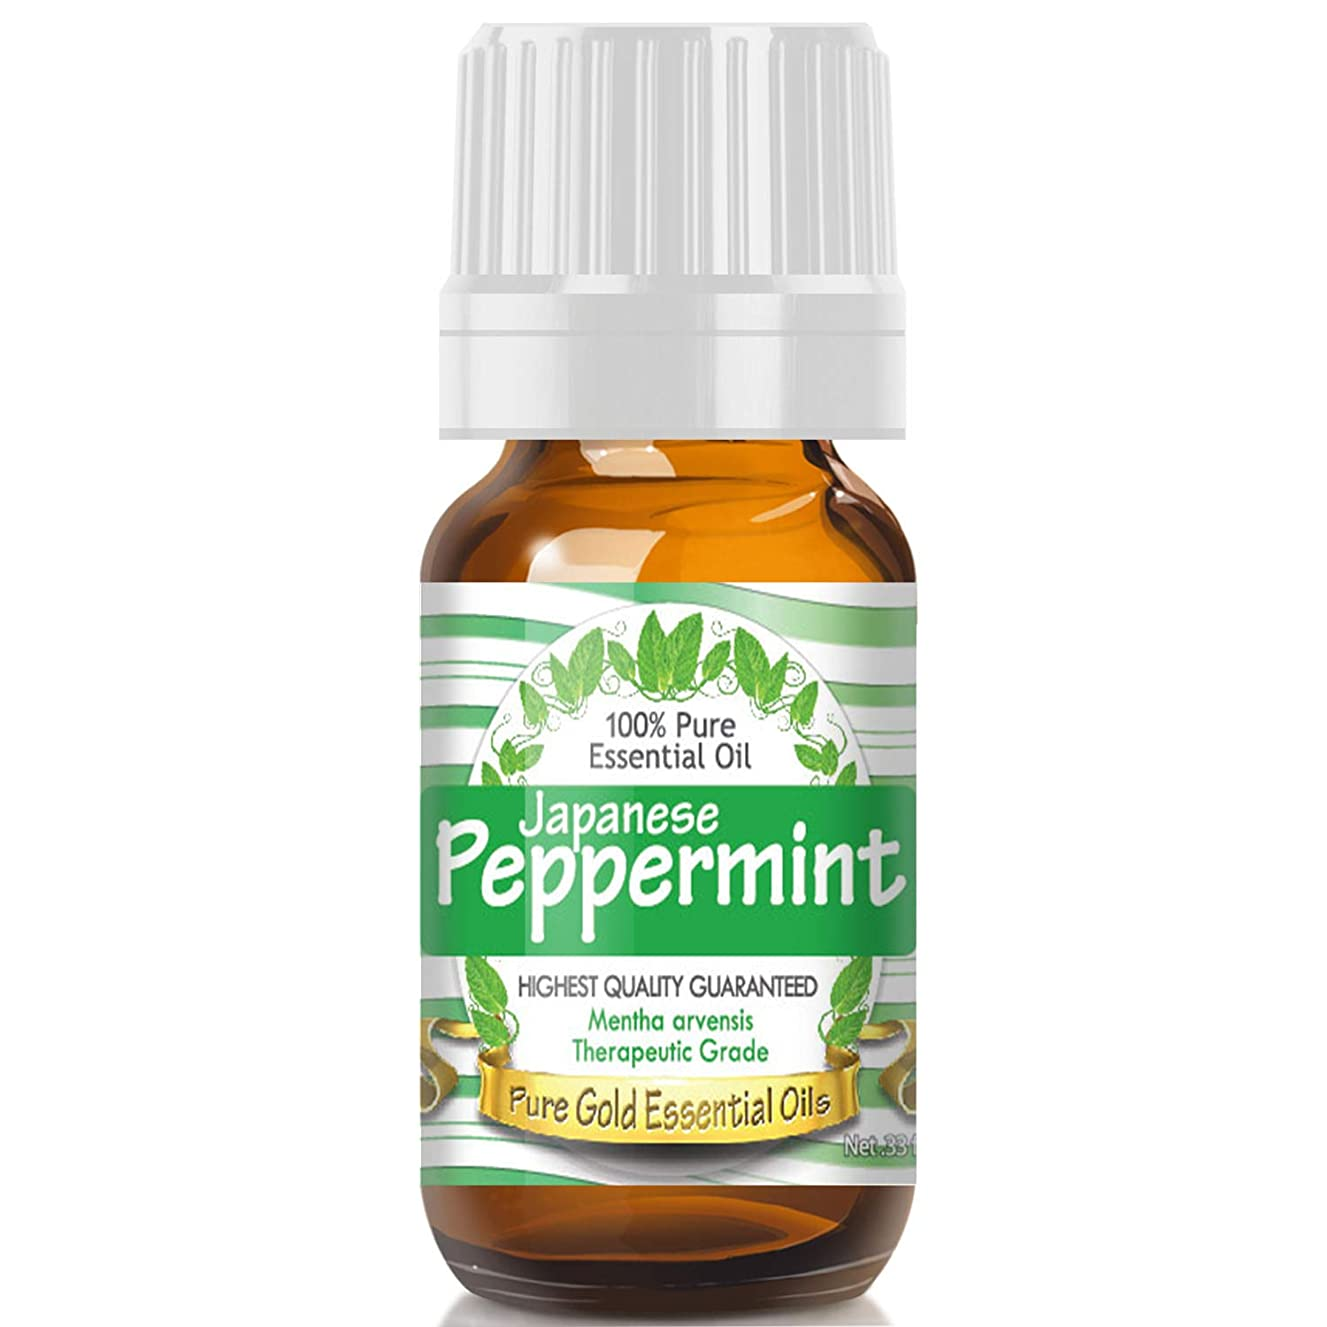 Japanese Peppermint Essential Oil (100% Pure, Natural, UNDILUTED) 10ml - Best Therapeutic Grade - Perfect for Your Aromatherapy Diffuser, Relaxation, More!